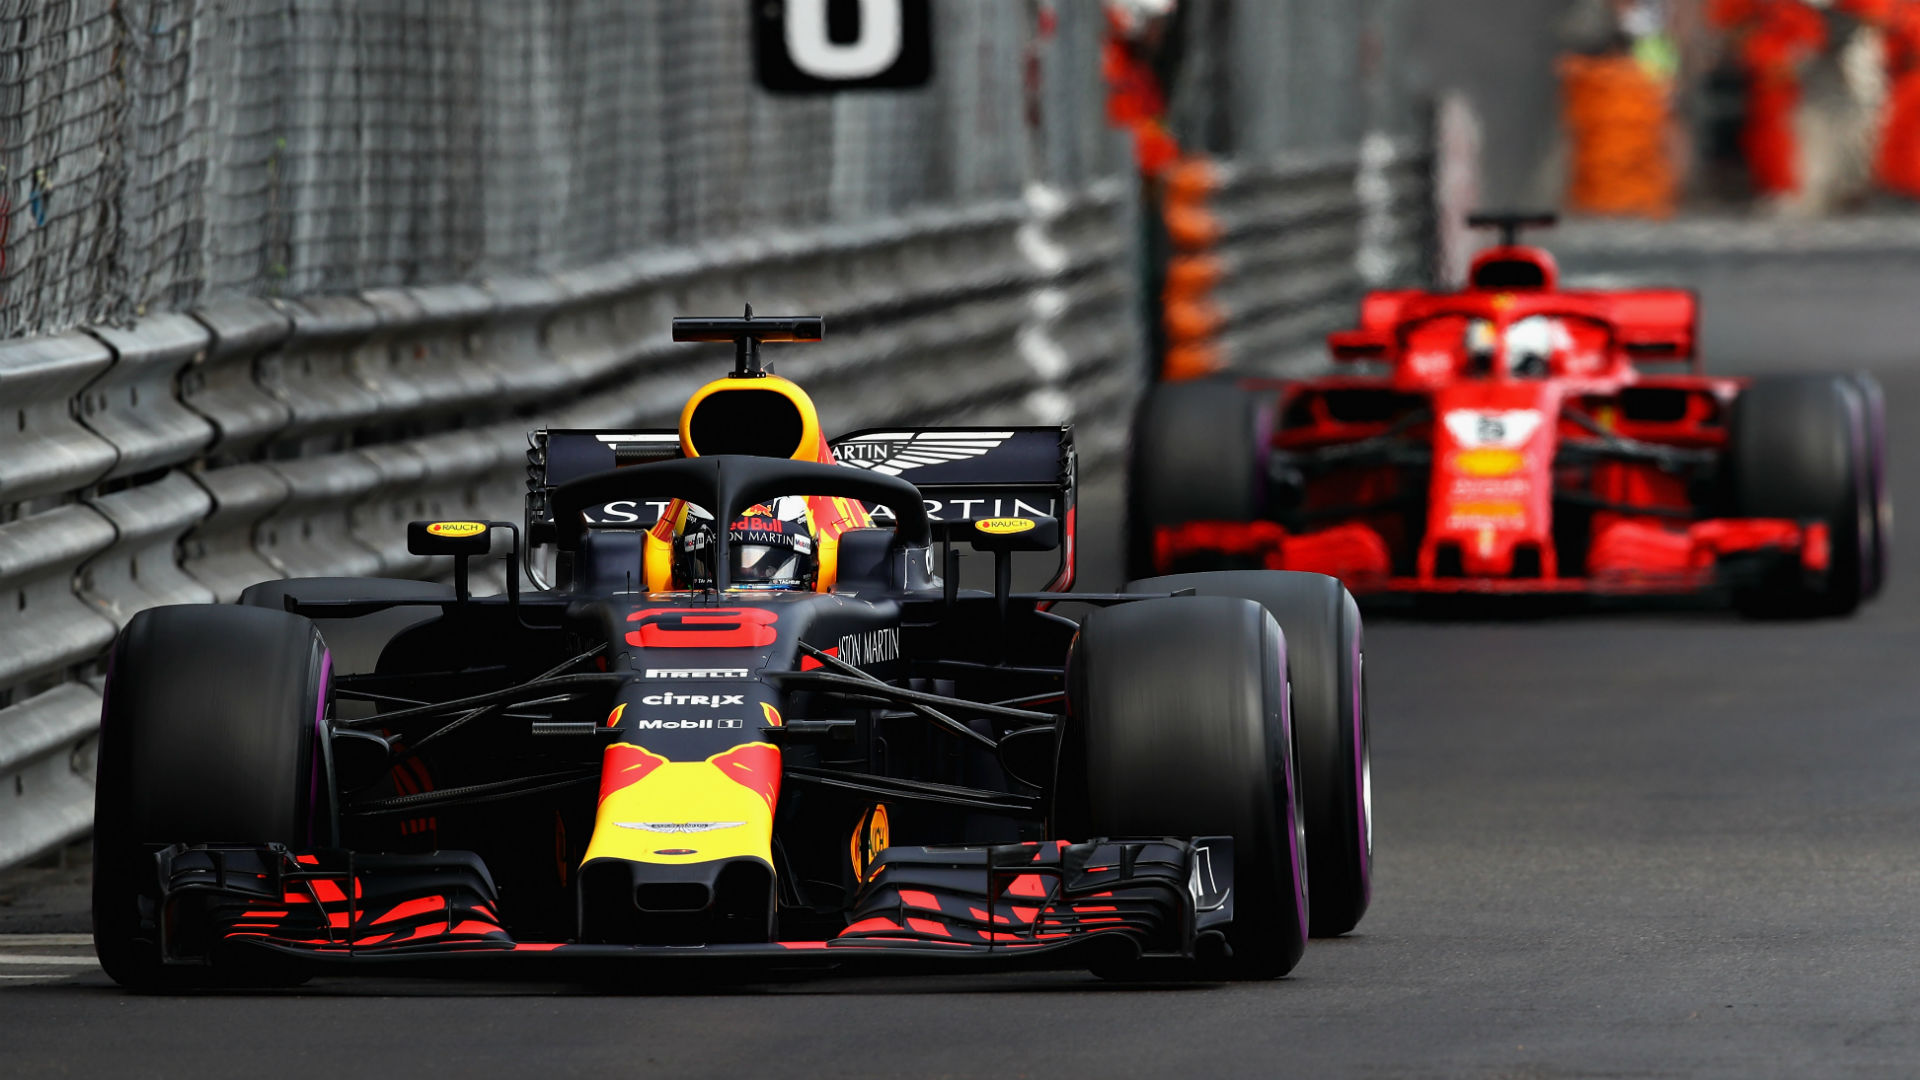 monaco grand prix 2018 daniel ricciardo ends monaco drought despite mechanical issue other. Black Bedroom Furniture Sets. Home Design Ideas